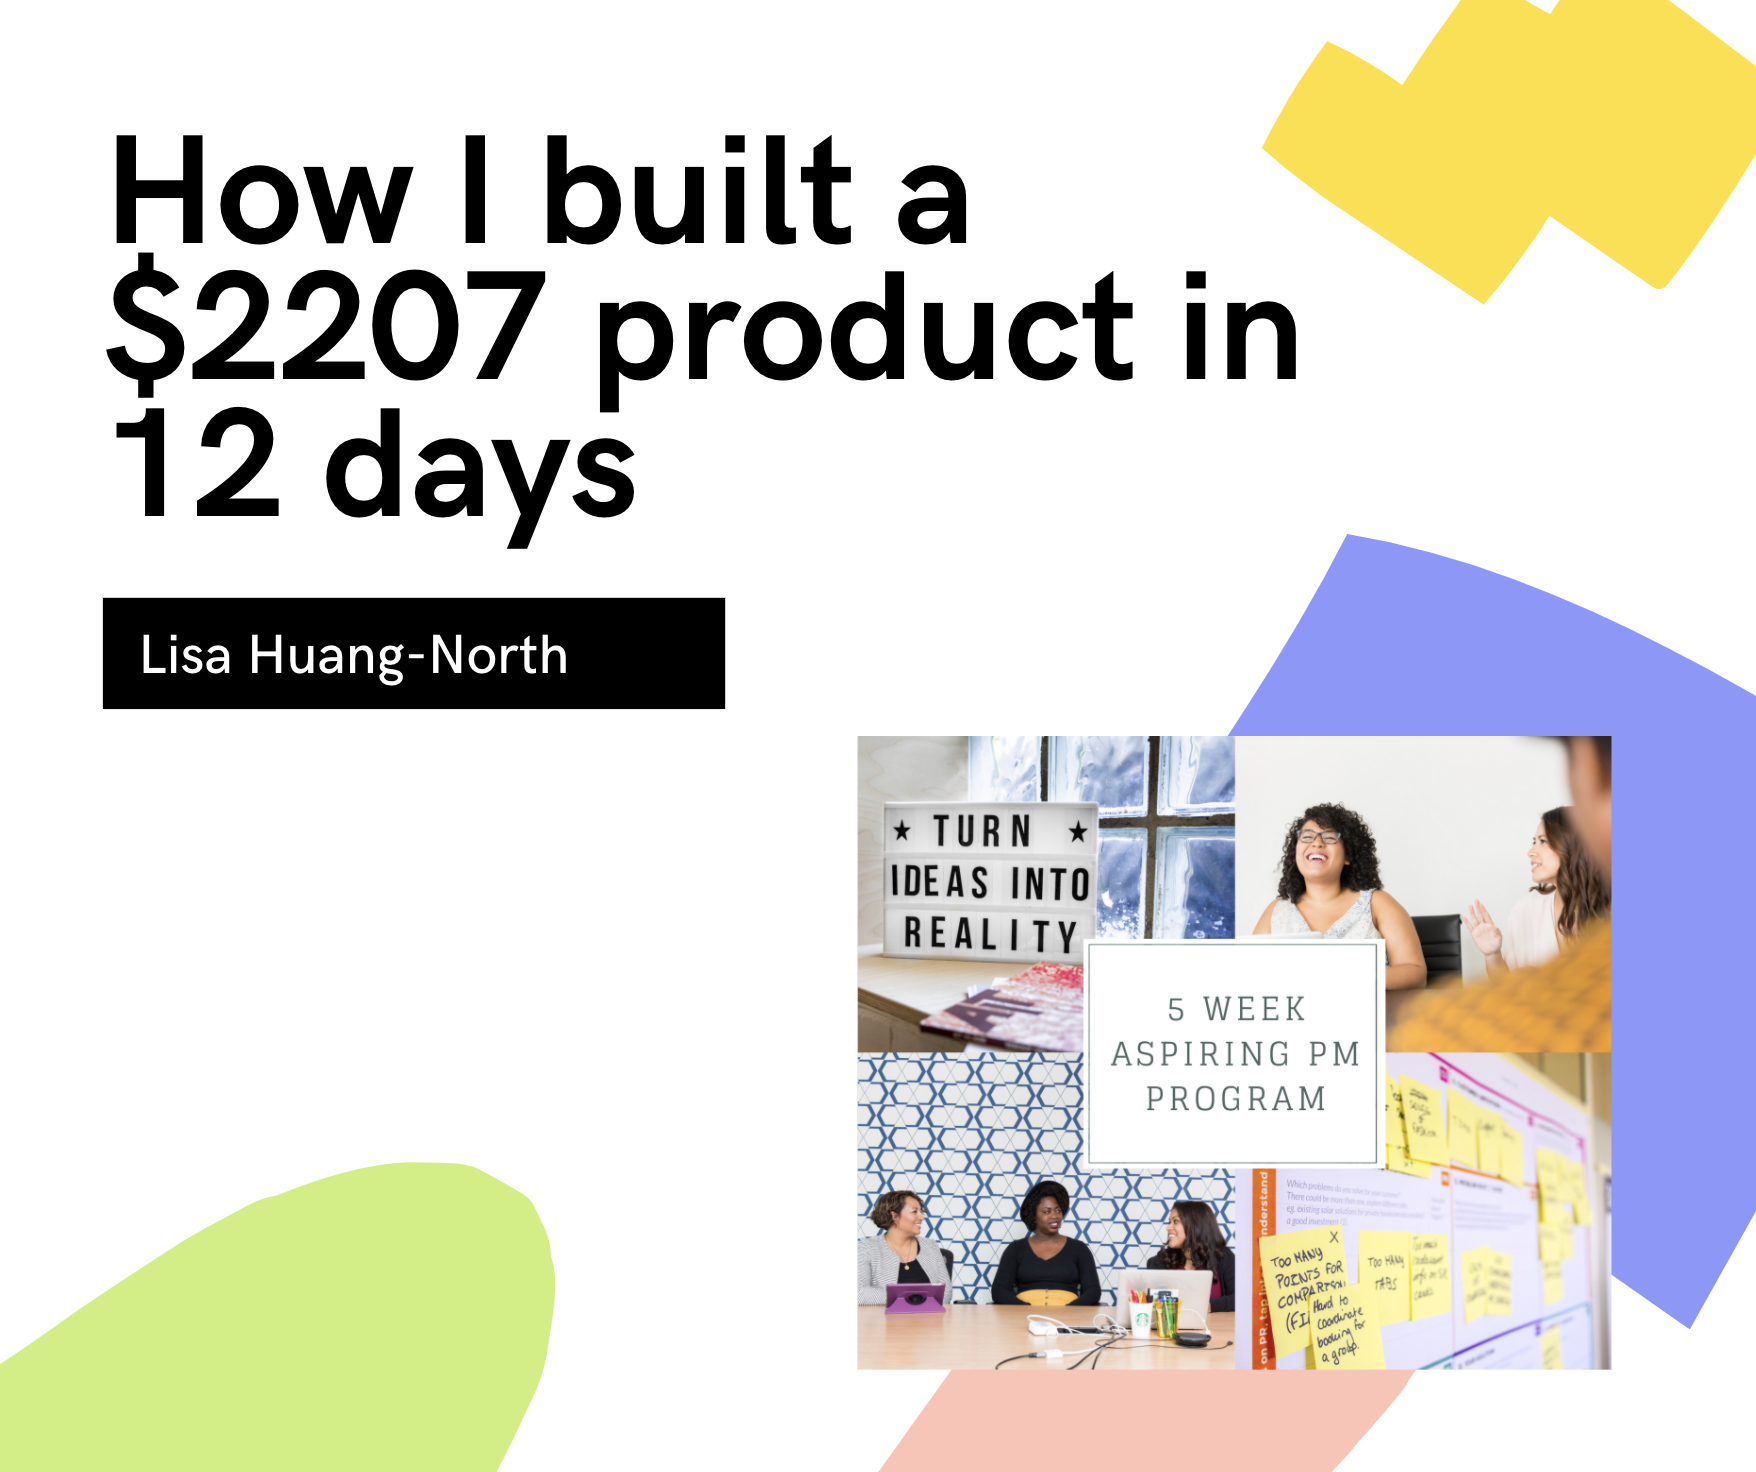 Lisa Huang-North: How I built a $2,207 product in 12 days